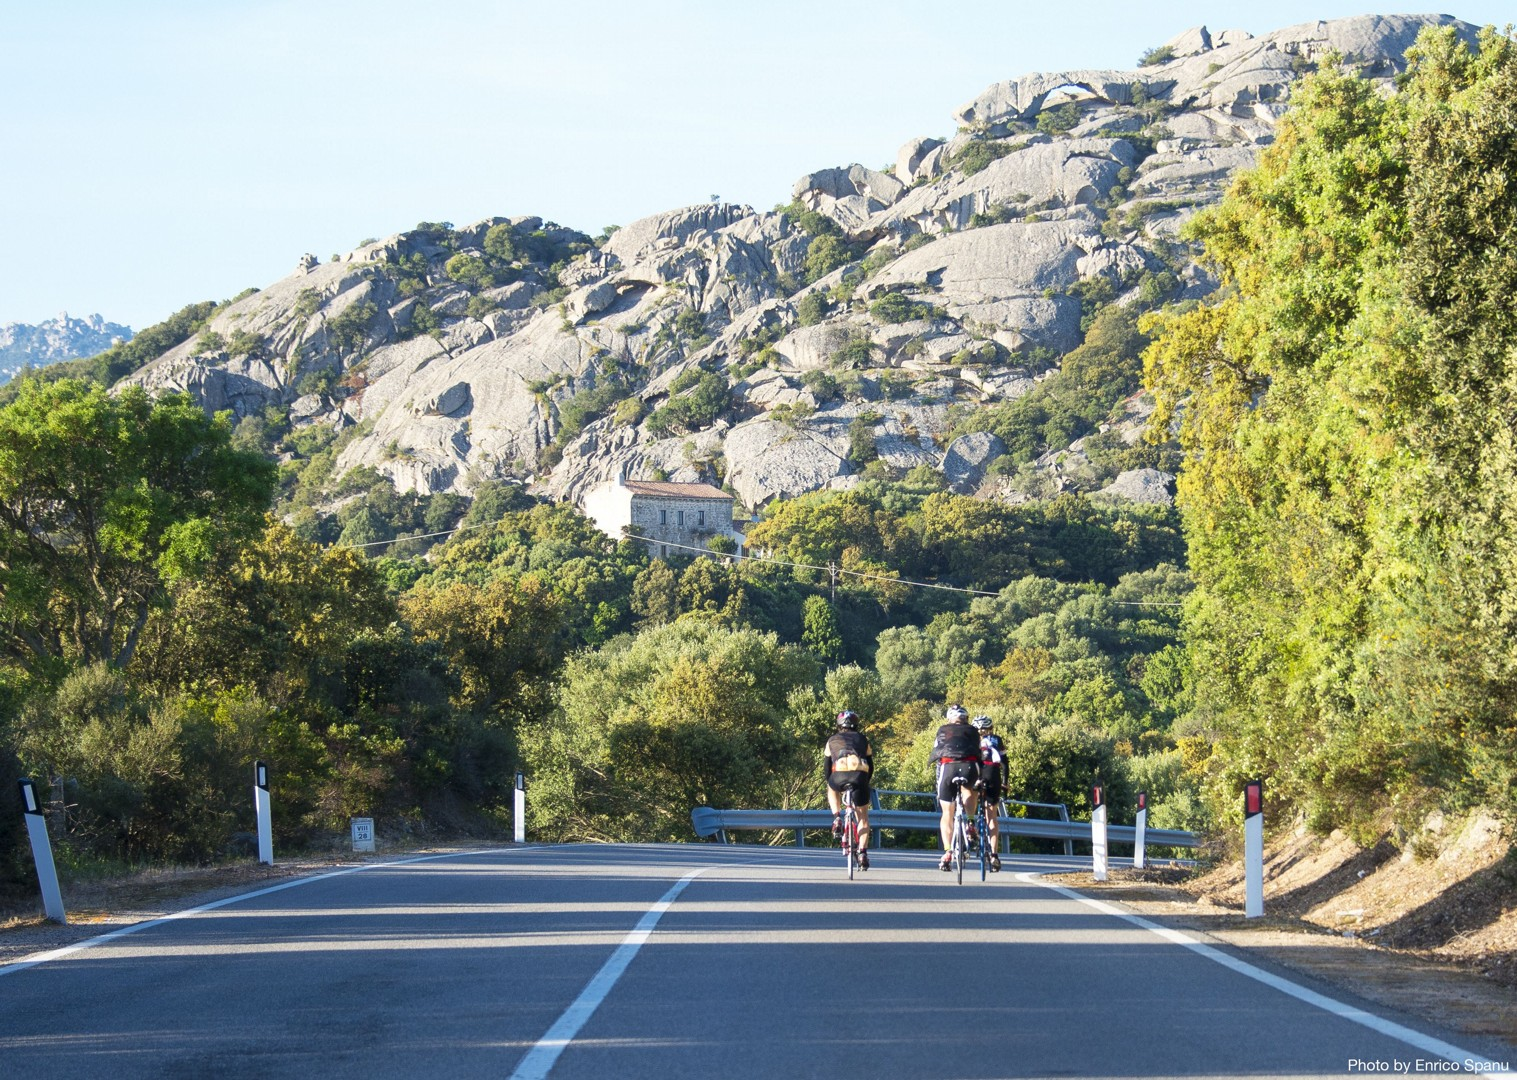 Self-Guided-Road-Cycling-Holiday-Coastal-Explorer-Sardinia-descent-to-Fluminimaggiore-and-Masua.jpg - Italy - Sardinia - Coastal Transardinia - Self-Guided Road Cycling Holiday - Italia Road Cycling